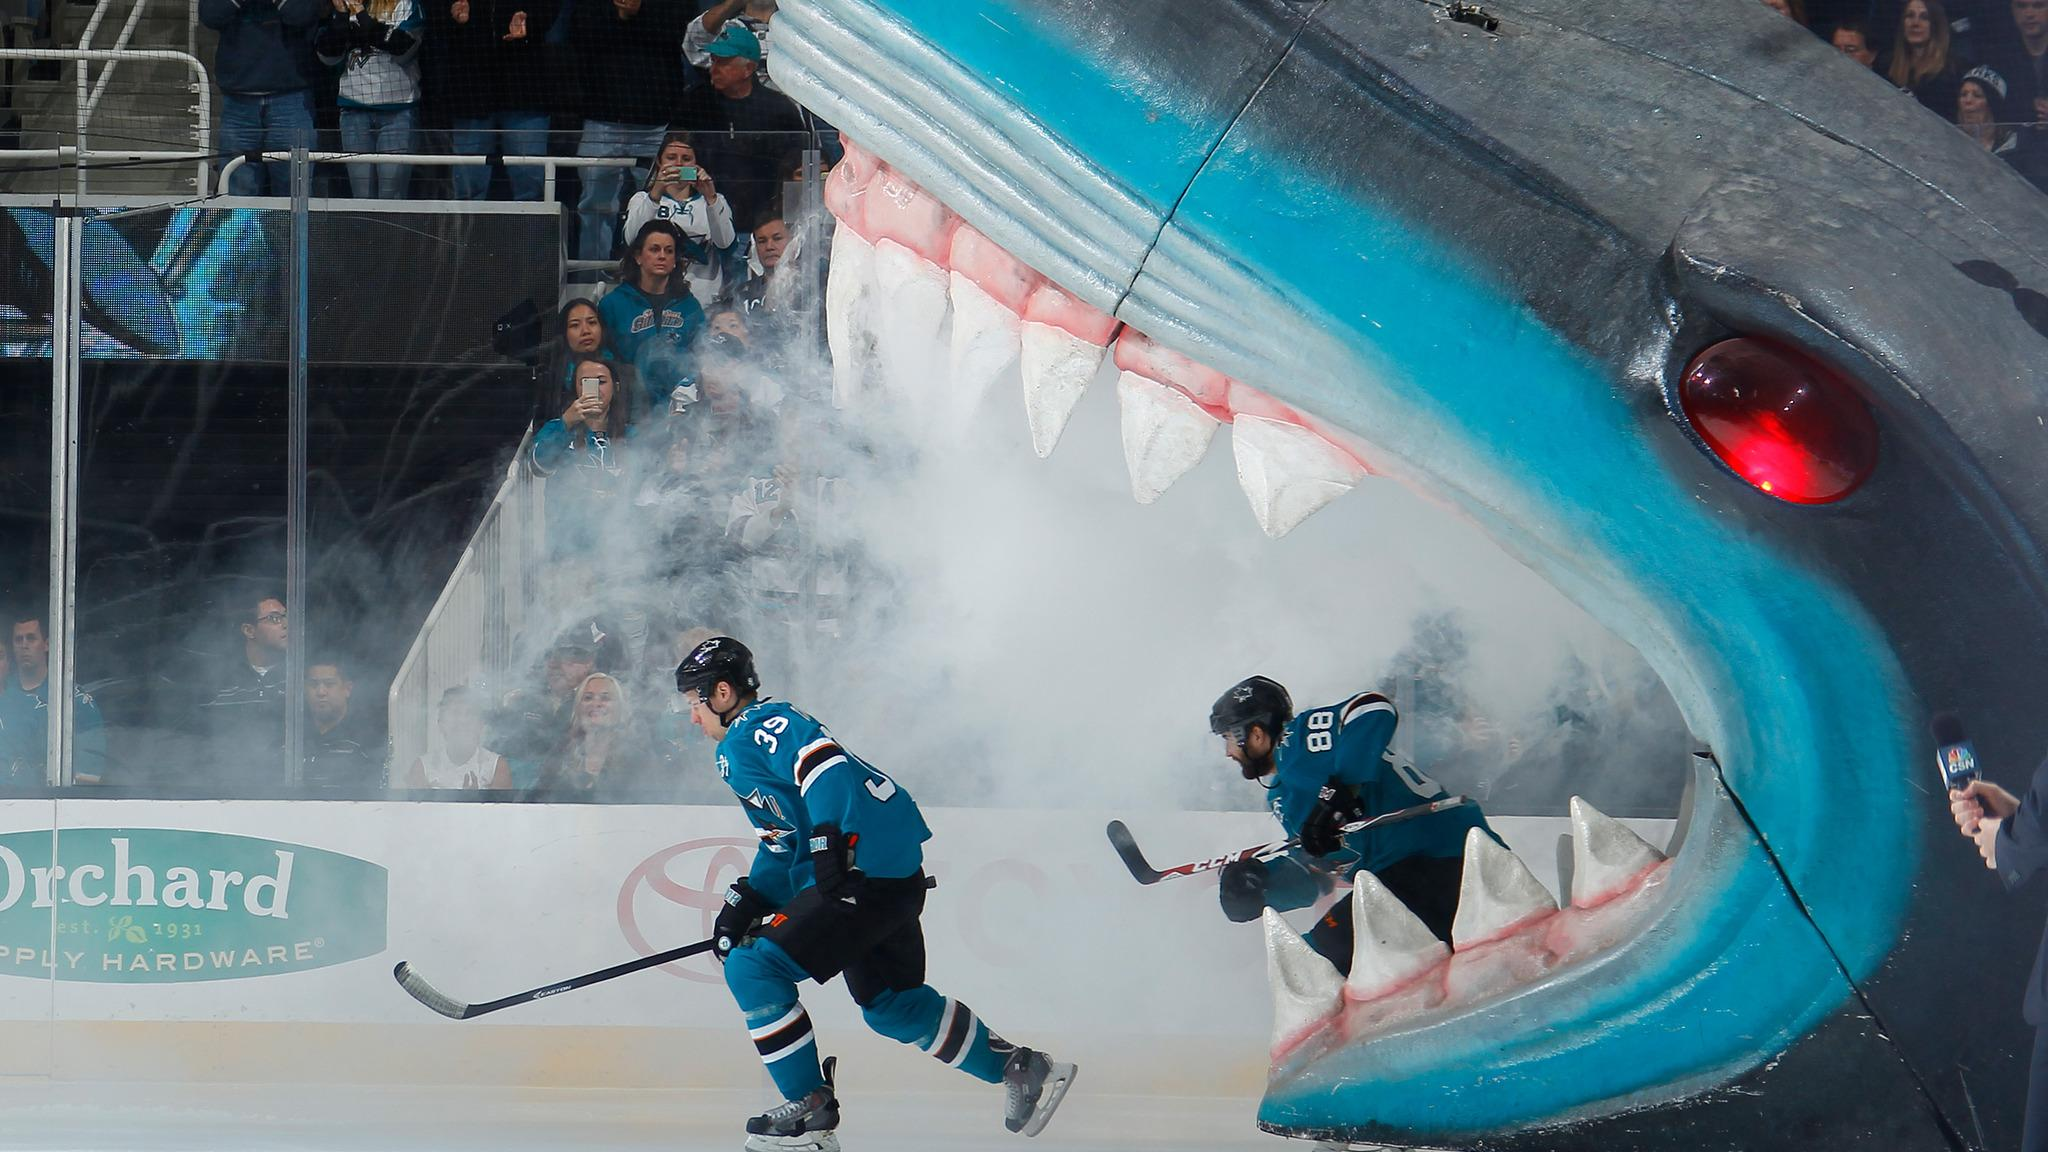 San Jose Sharks vs. Boston Bruins at SAP Center at San Jose - San Jose, CA 95113